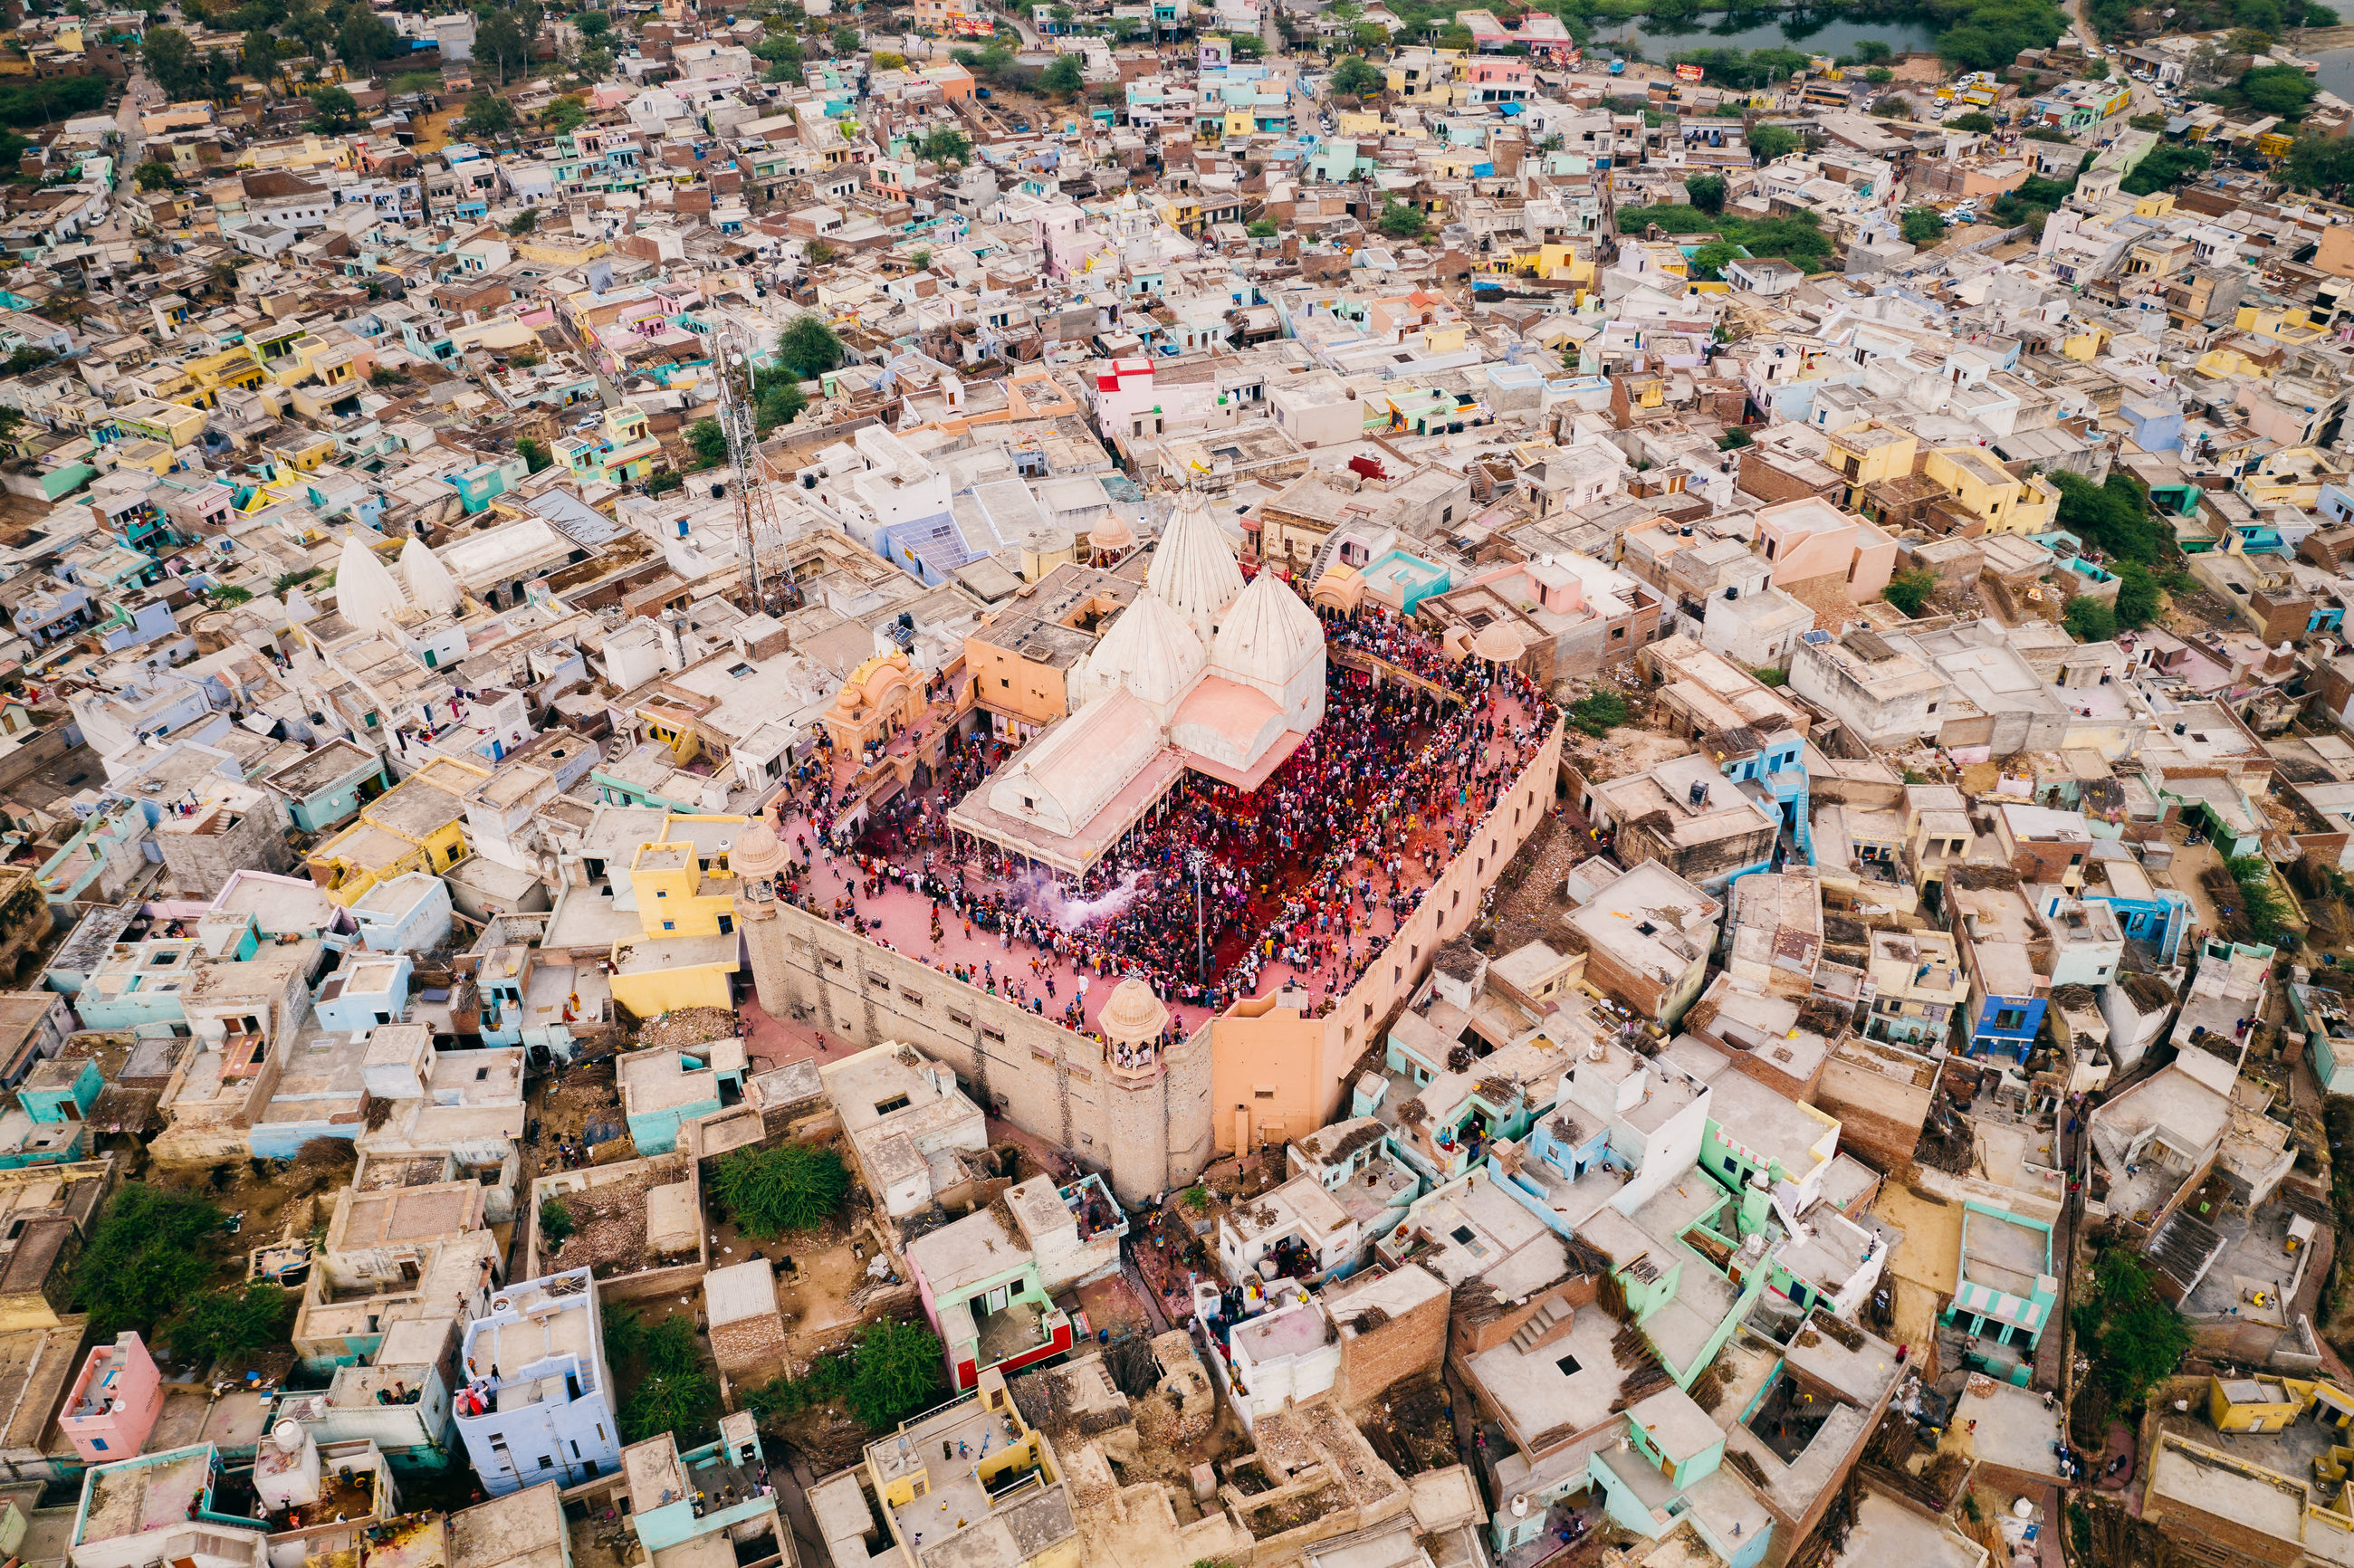 high angle view, architecture, building exterior, day, crowd, city, crowded, built structure, outdoors, aerial view, nature, garbage, cityscape, large group of objects, abundance, building, group of people, celebration, town